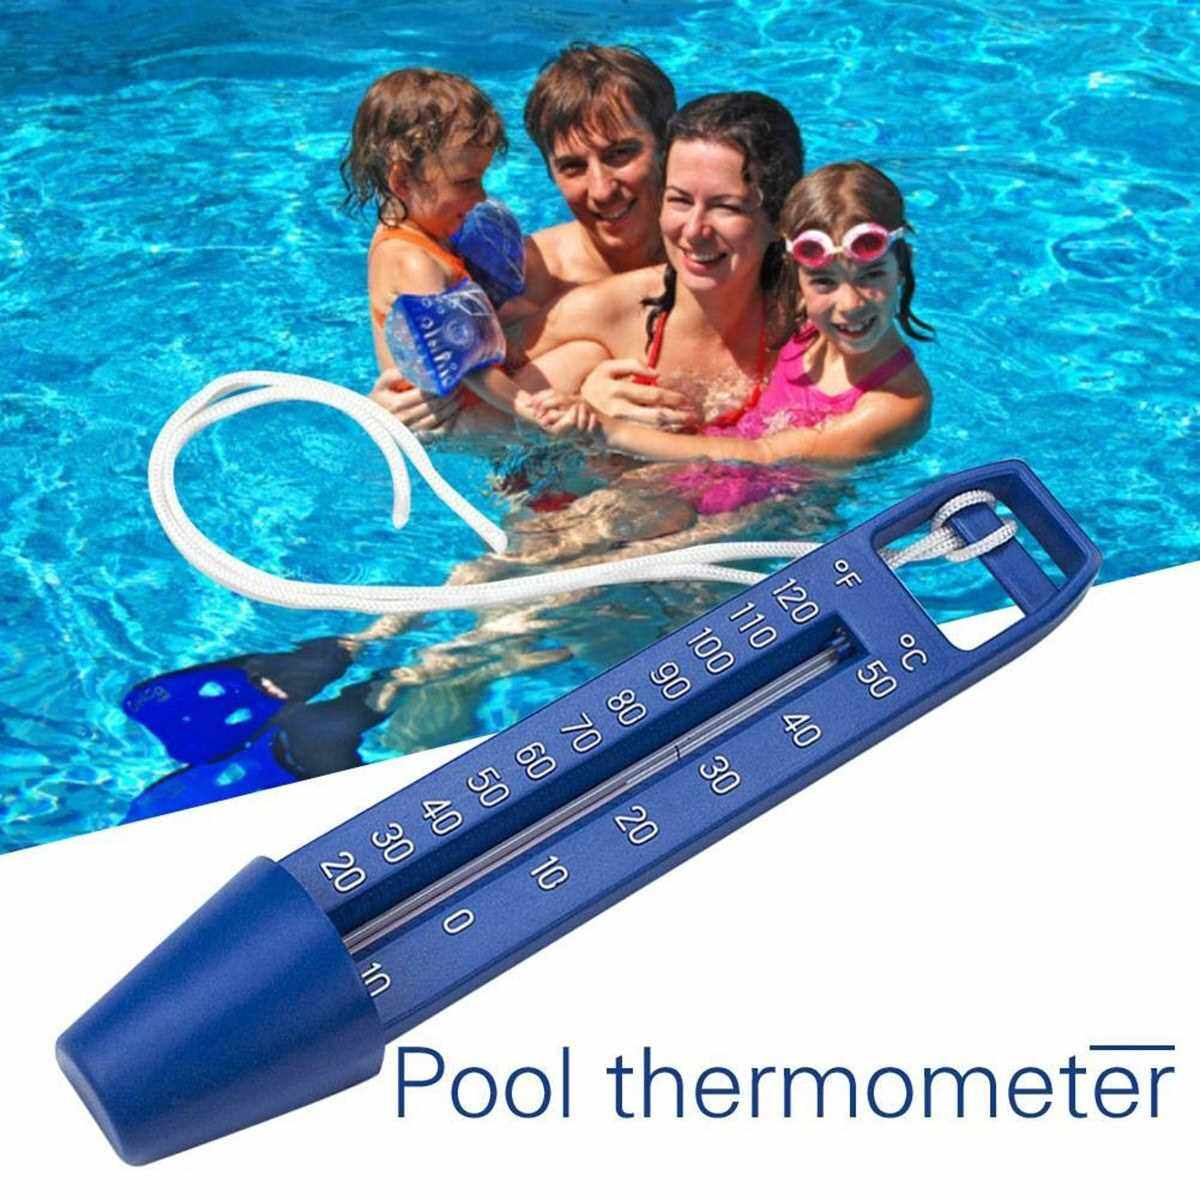 Pool Thermometer Premium Water Thermometers with String Degrees and Fahrenheit Accurate Temperature Readings Ideal for All Swimming Pools Spas Hot Tubs Ponds (Standard)